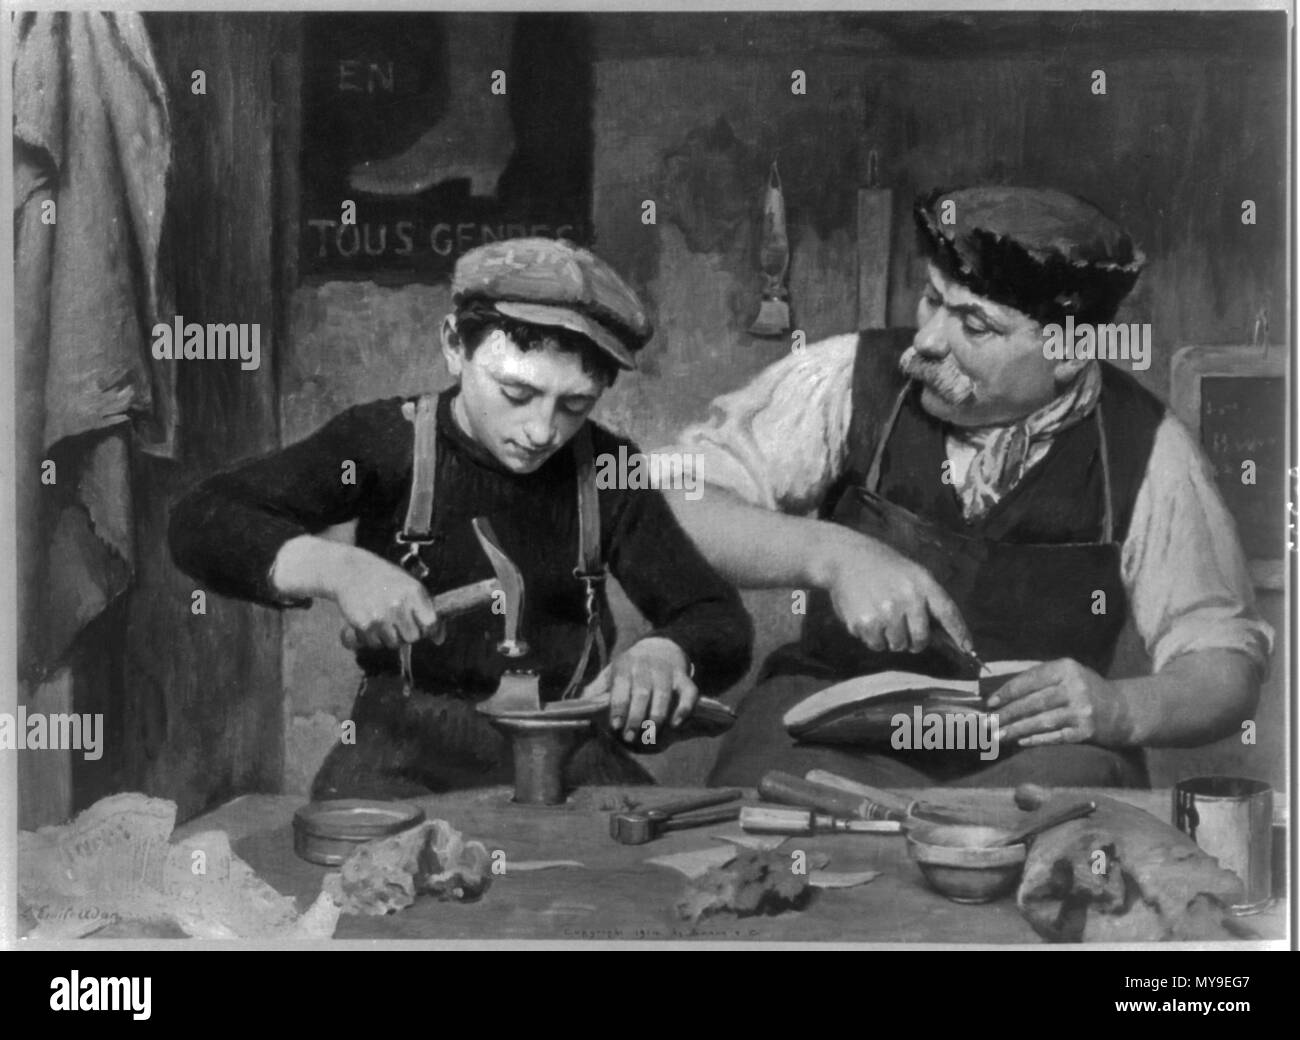 . English: Apprentice. Man and boy making shoes. circa 1914. Repro. of painting by (Louis-?)Emile Adan (1839-1937), copyrighted by Braun & Co., N.Y. 46 Apprenticeship - Stock Image